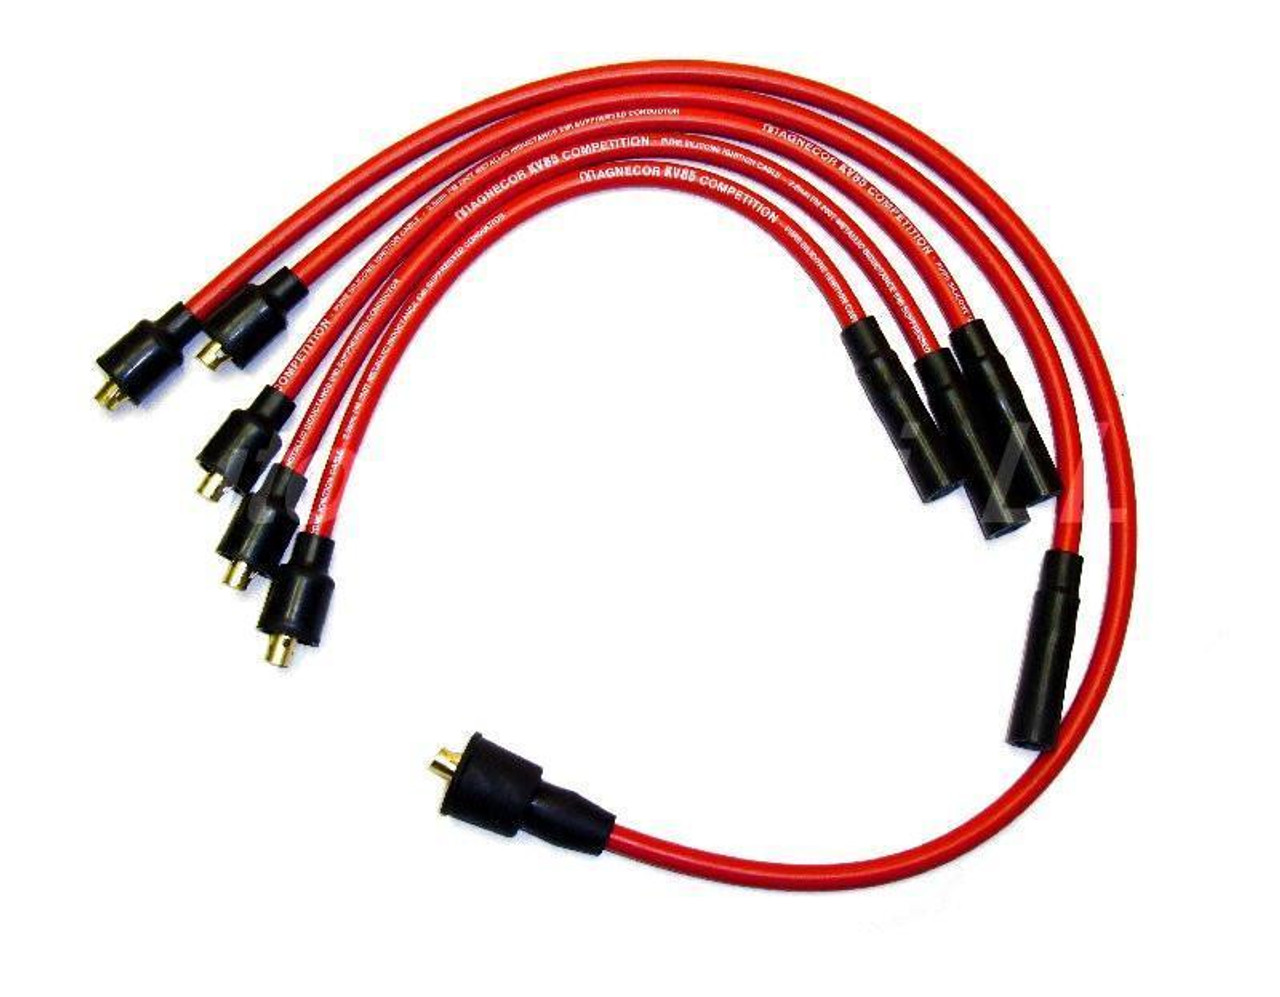 Magnecor 8.5mm High Performance Spark Plug Wires 1973-85 on spark plug solenoid, spark plug wire, spark plug module, spark plug insulator, spark plug brackets, spark plug housing, spark plug shift knob, spark plug relay, spark plug plugs, spark plug cables, spark plug cords, spark plug repair, spark plug coil test, spark plug testing, spark plug battery, spark plug mounts, spark plug fuse, spark plug filter, spark plug operation, spark plug pump,